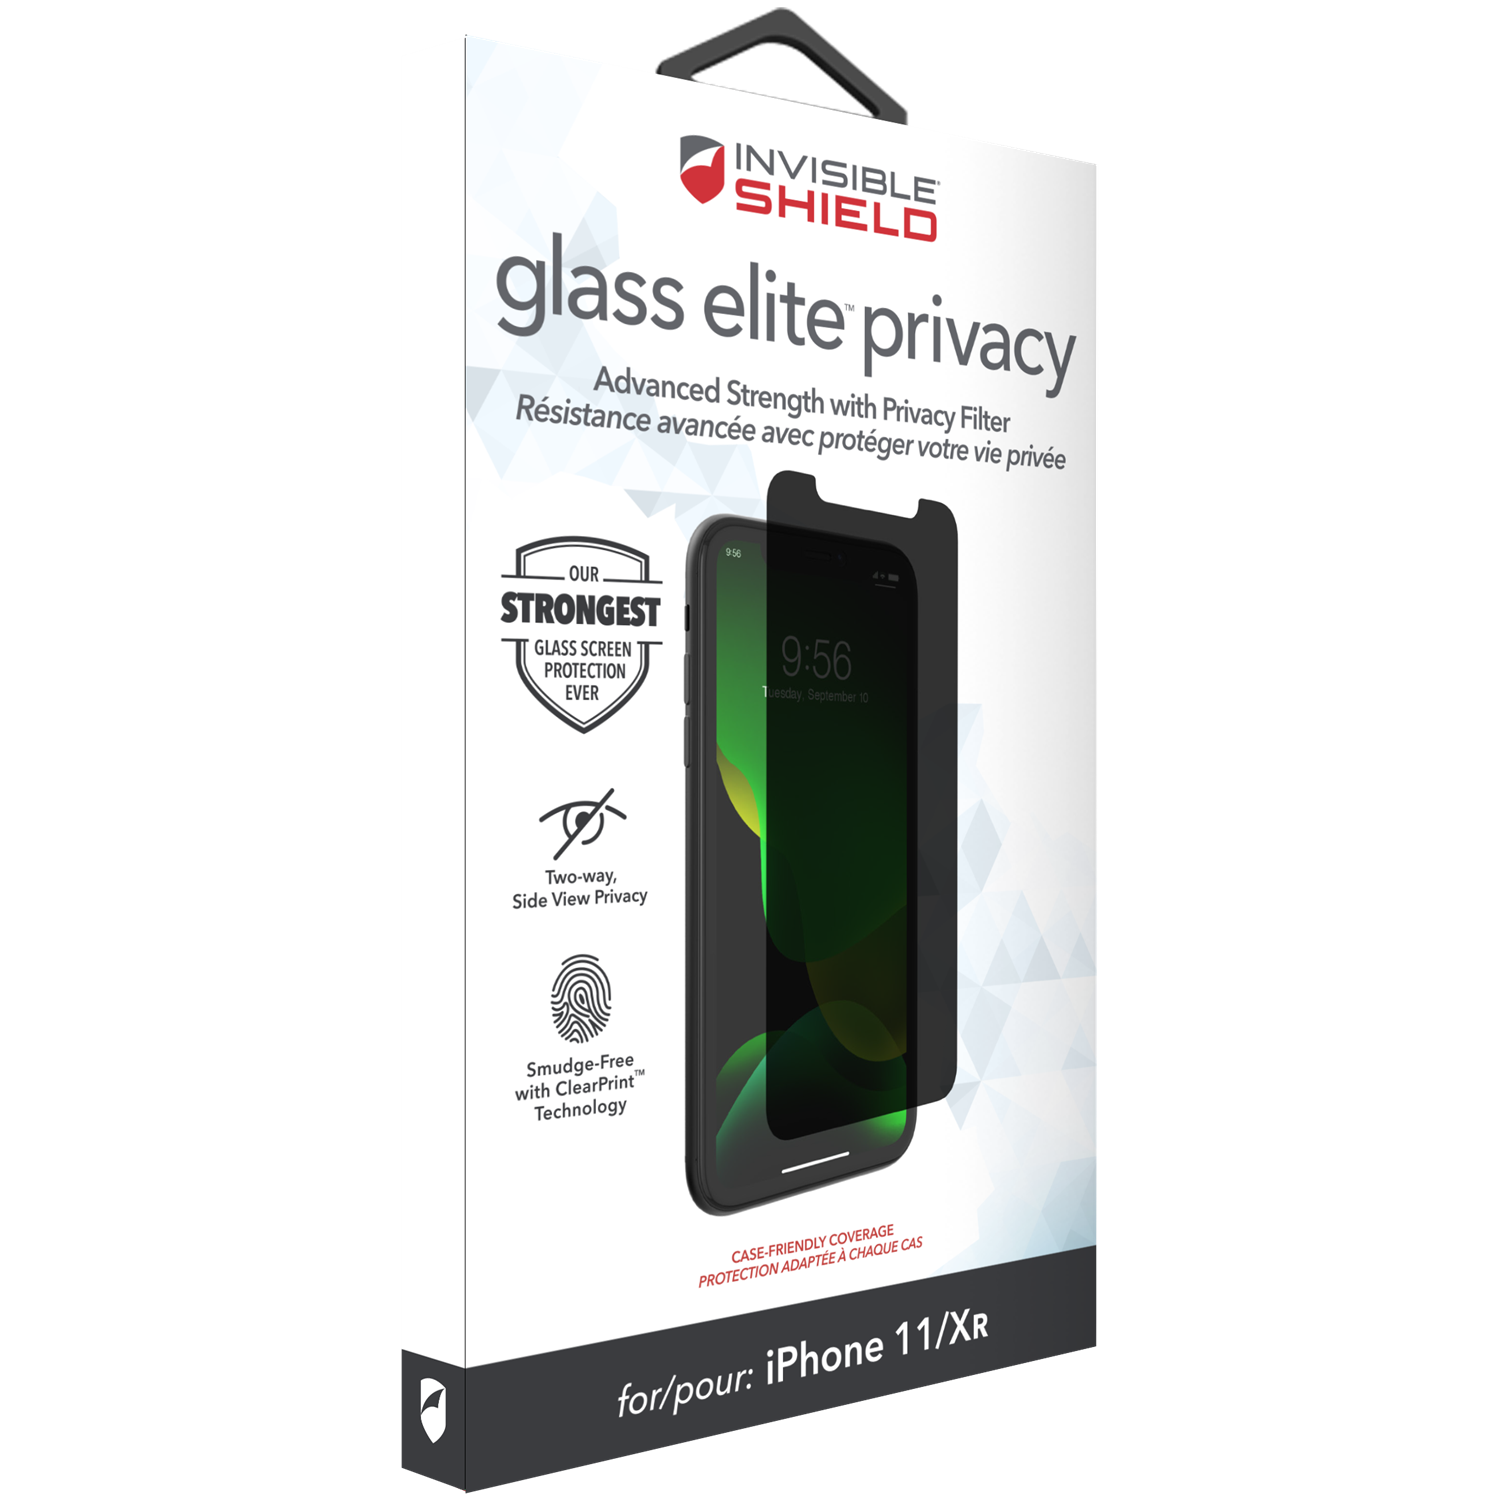 InvisibleShield Glass Elite Privacy iPhone XR/11